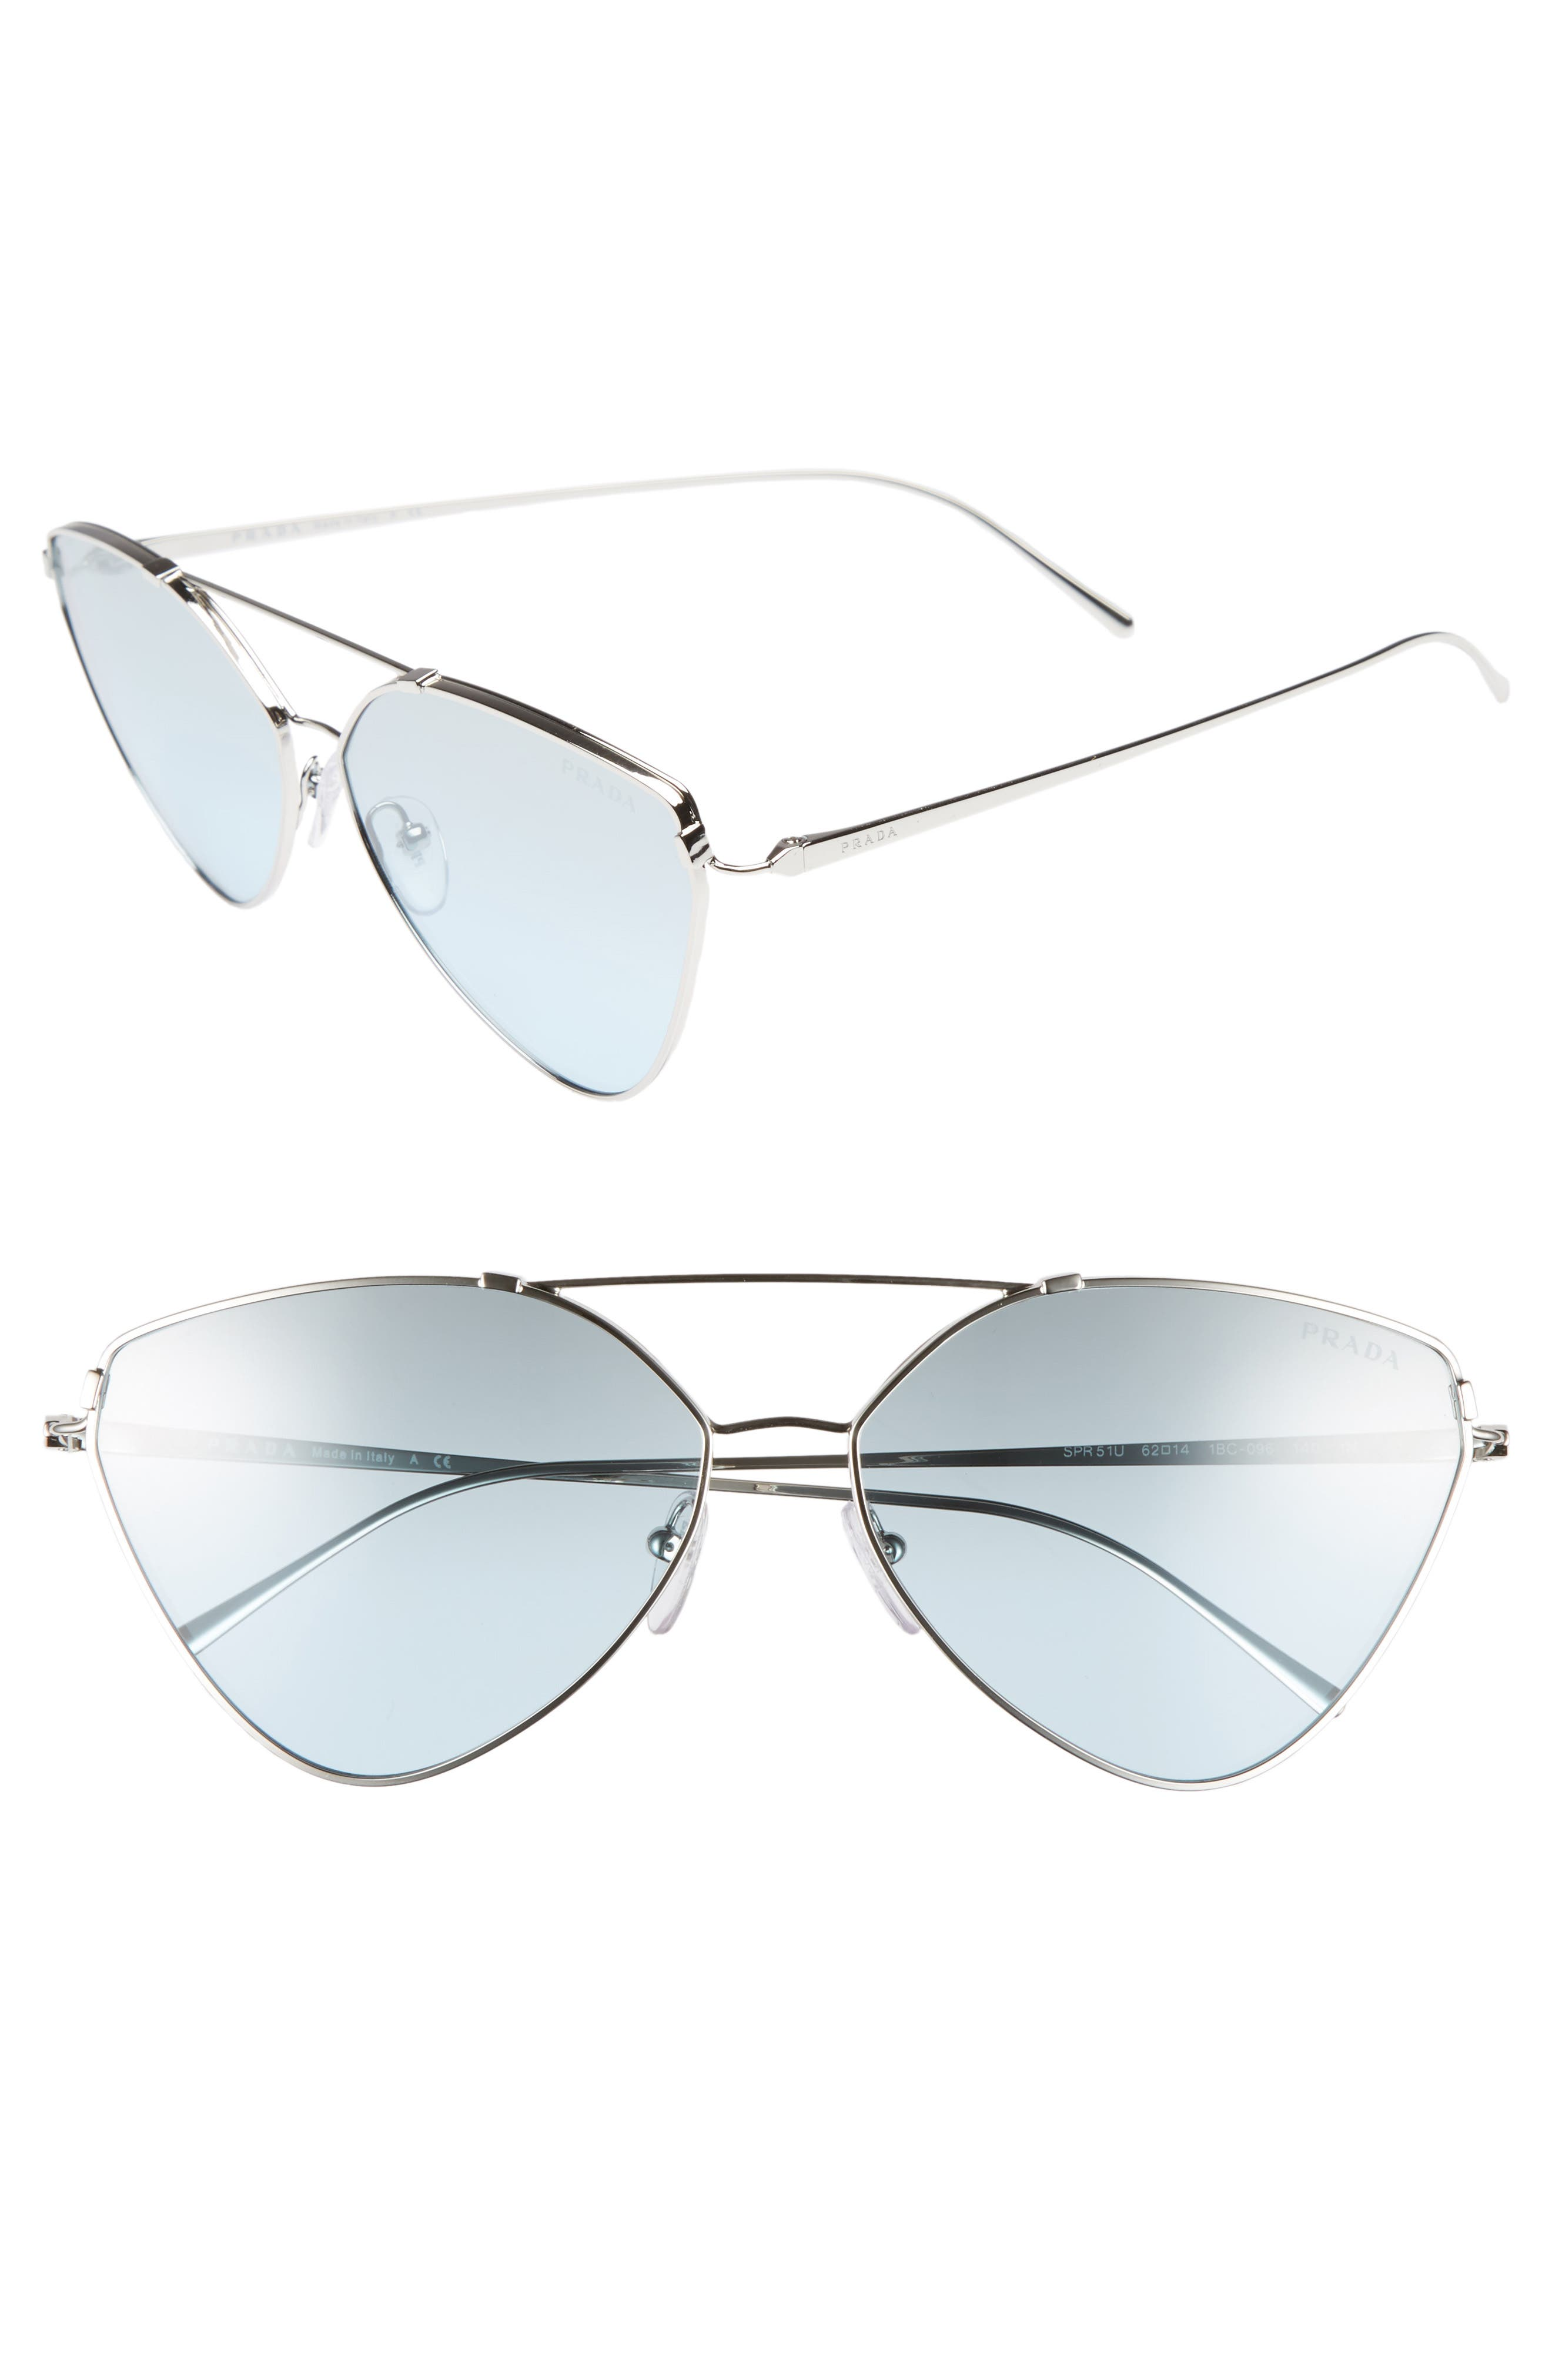 Main Image - Prada 62mm Oversize Aviator Sunglasses